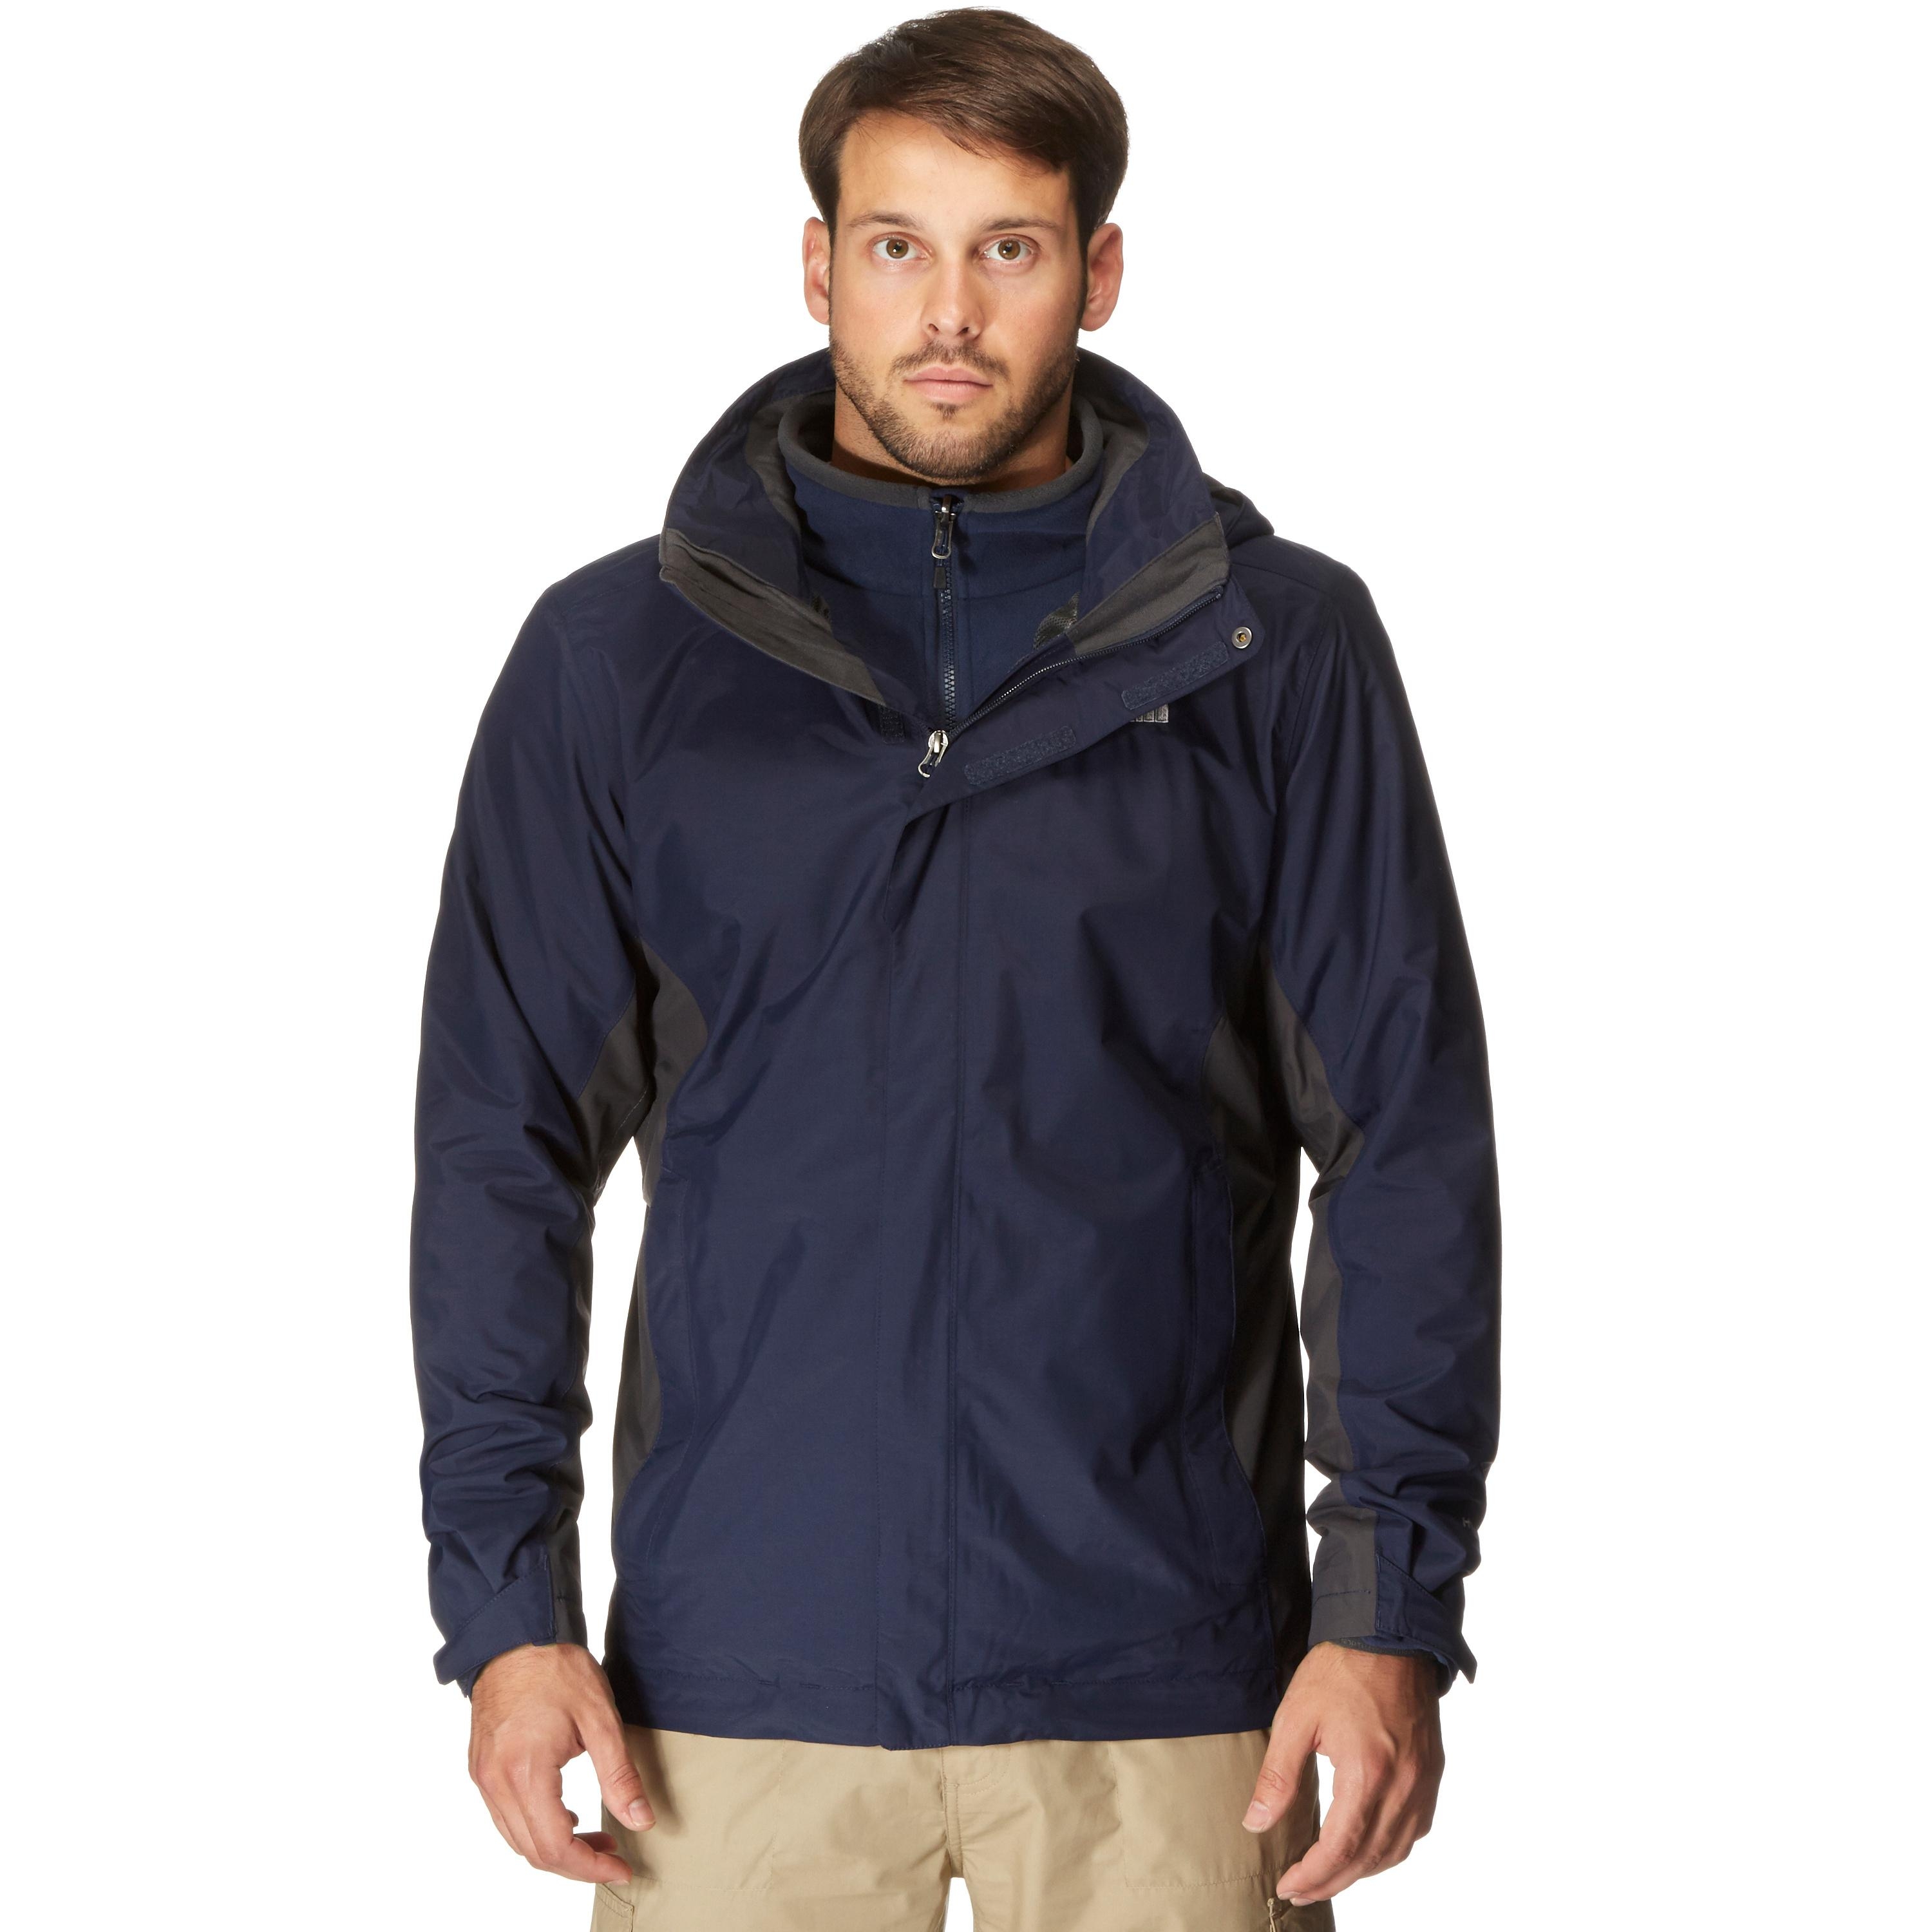 Denmark North Face Mens 3 In 1 Jackets - Mens Br:the North Face